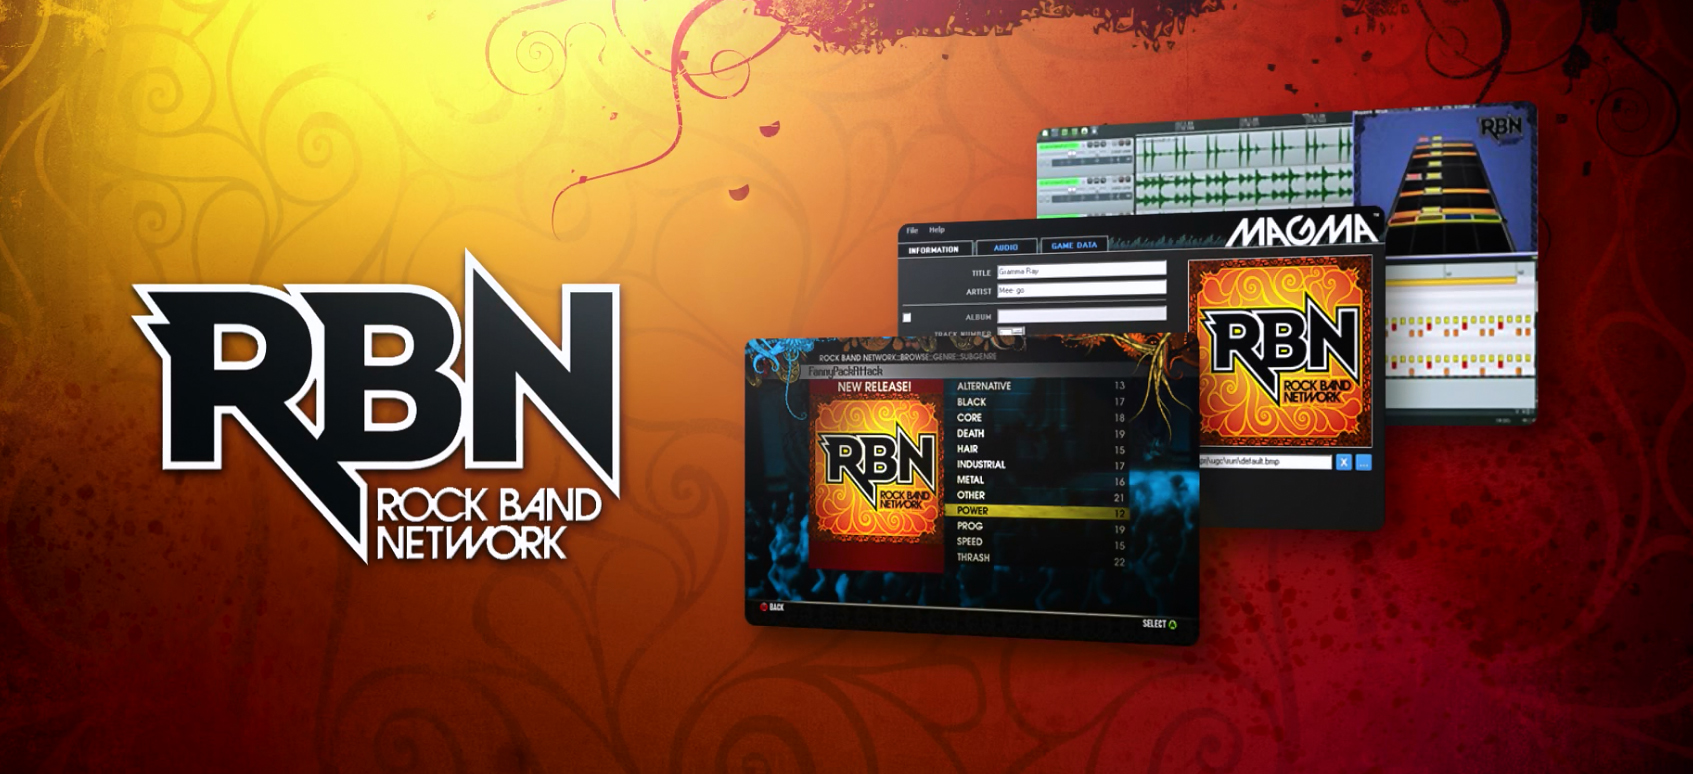 The Rock Band Network